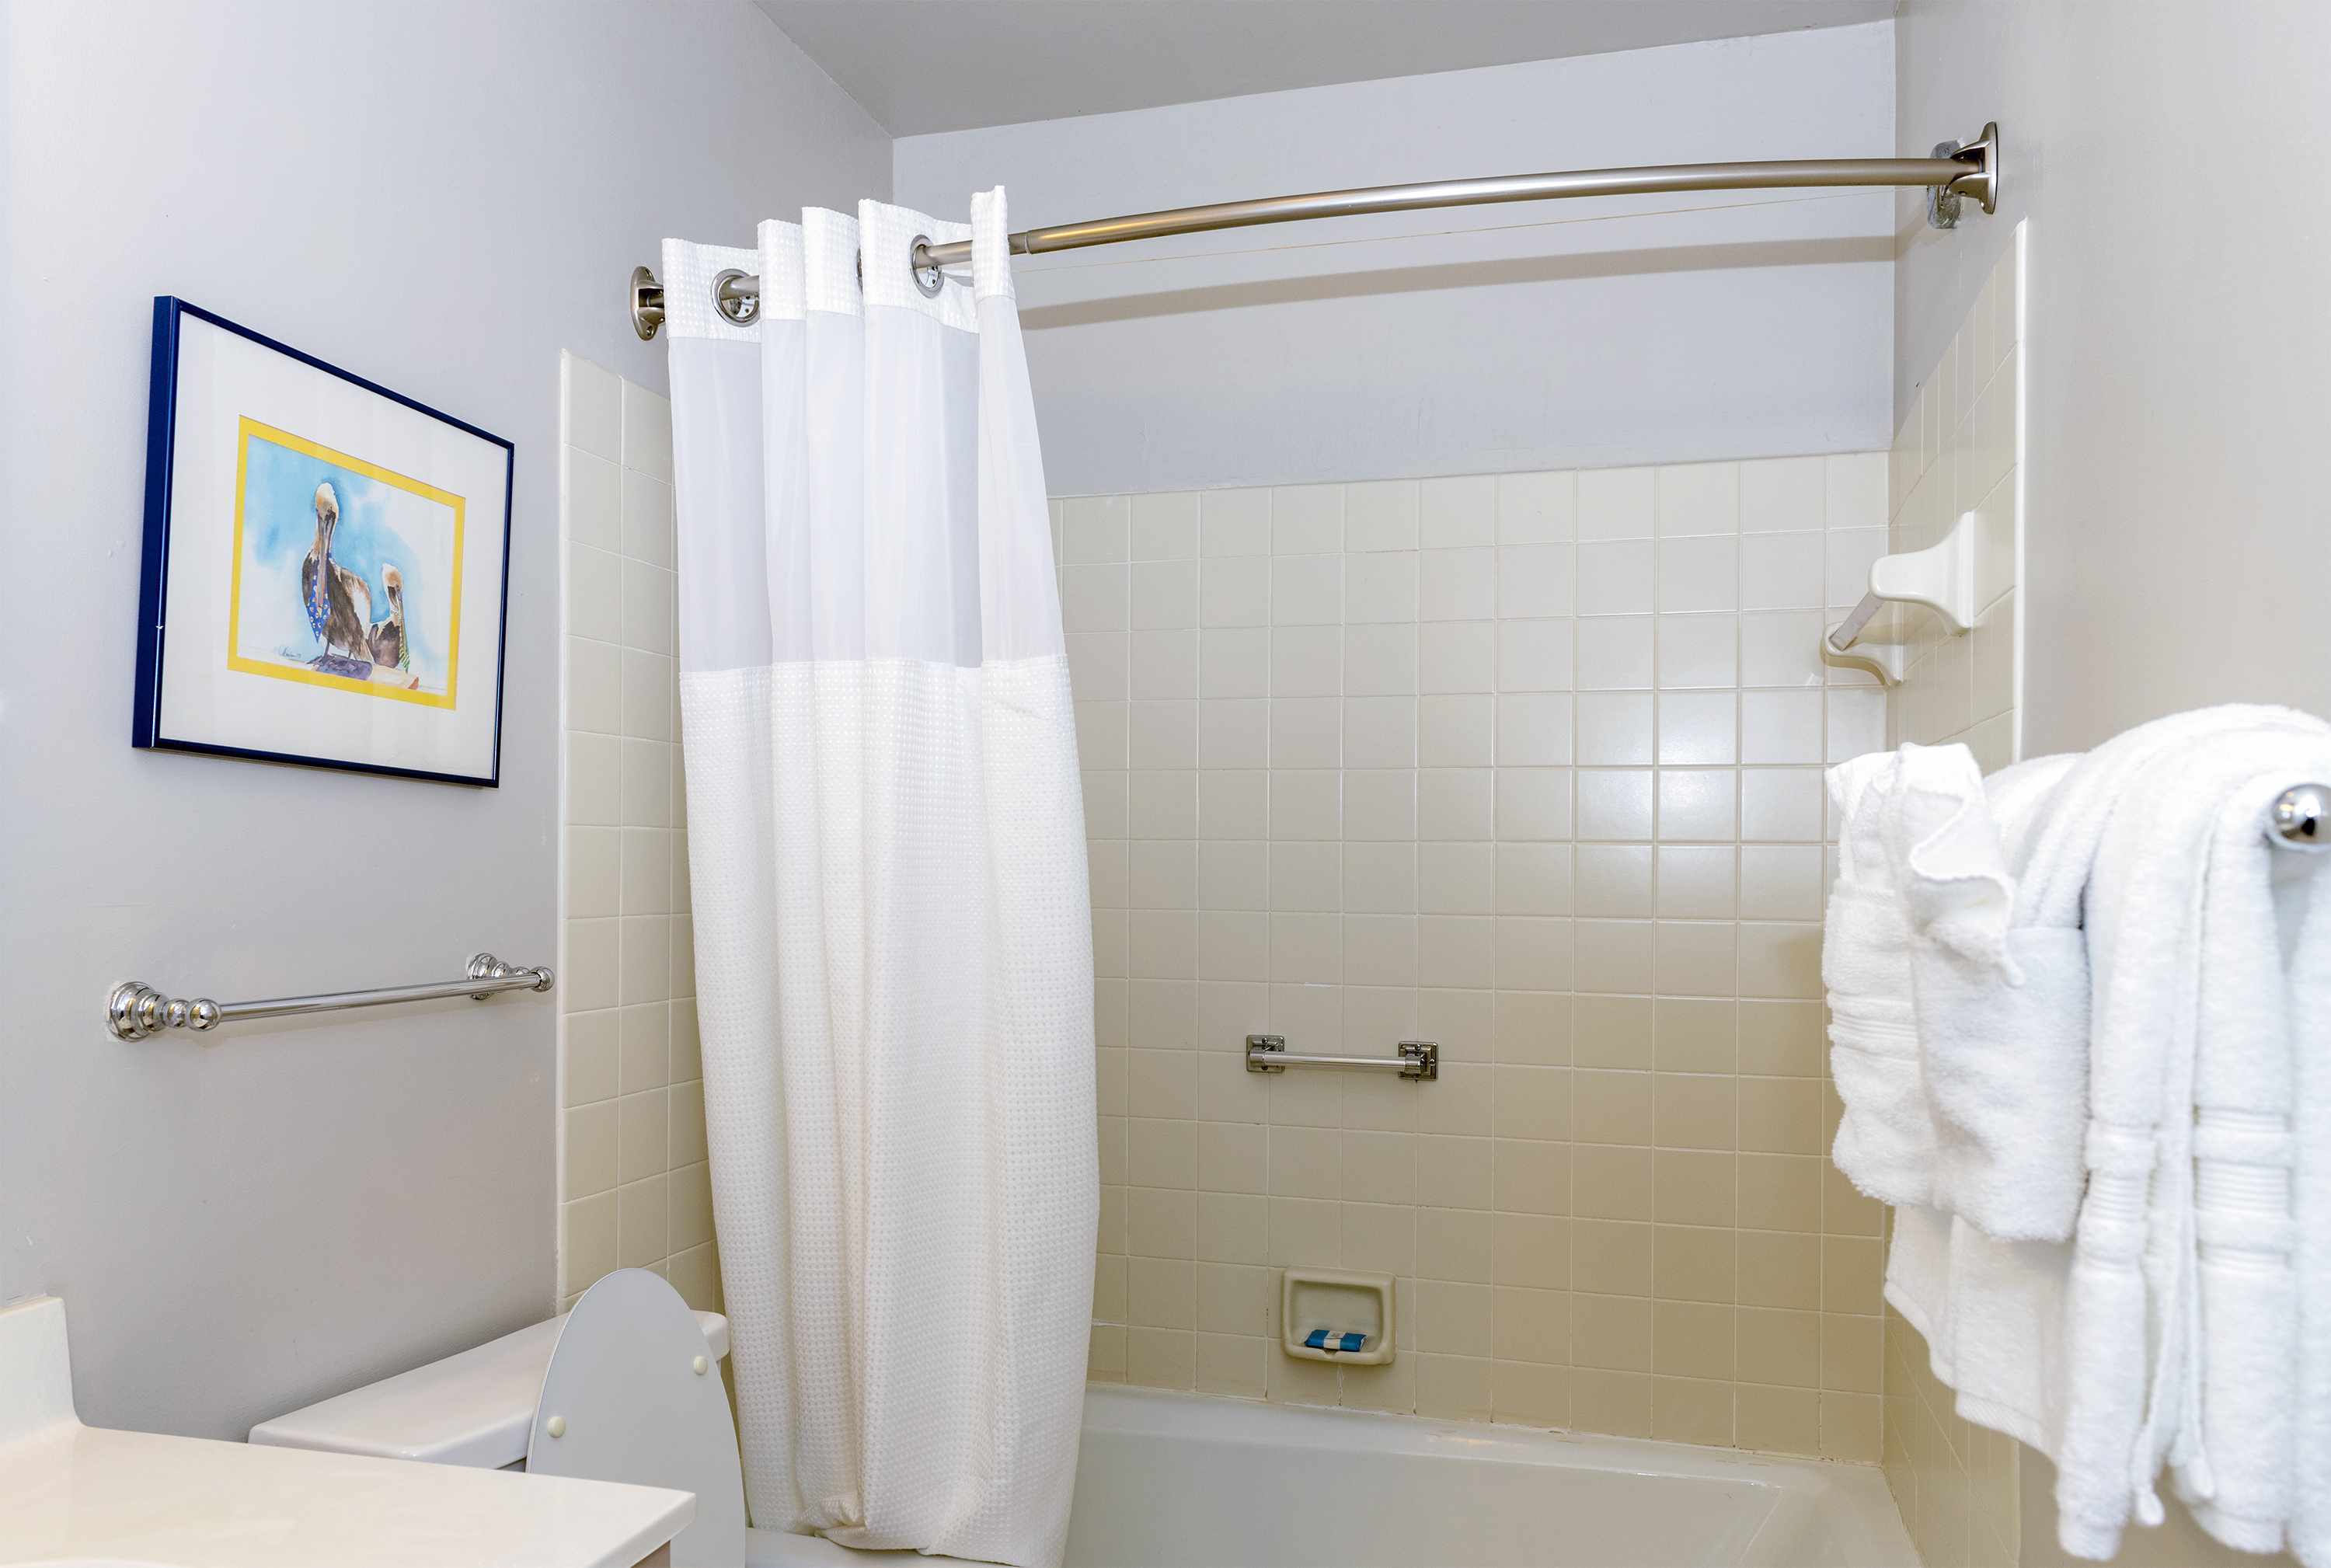 The hall bath is accessible to the 2nd and 3rd bedroom. The bath has a shower/tub.